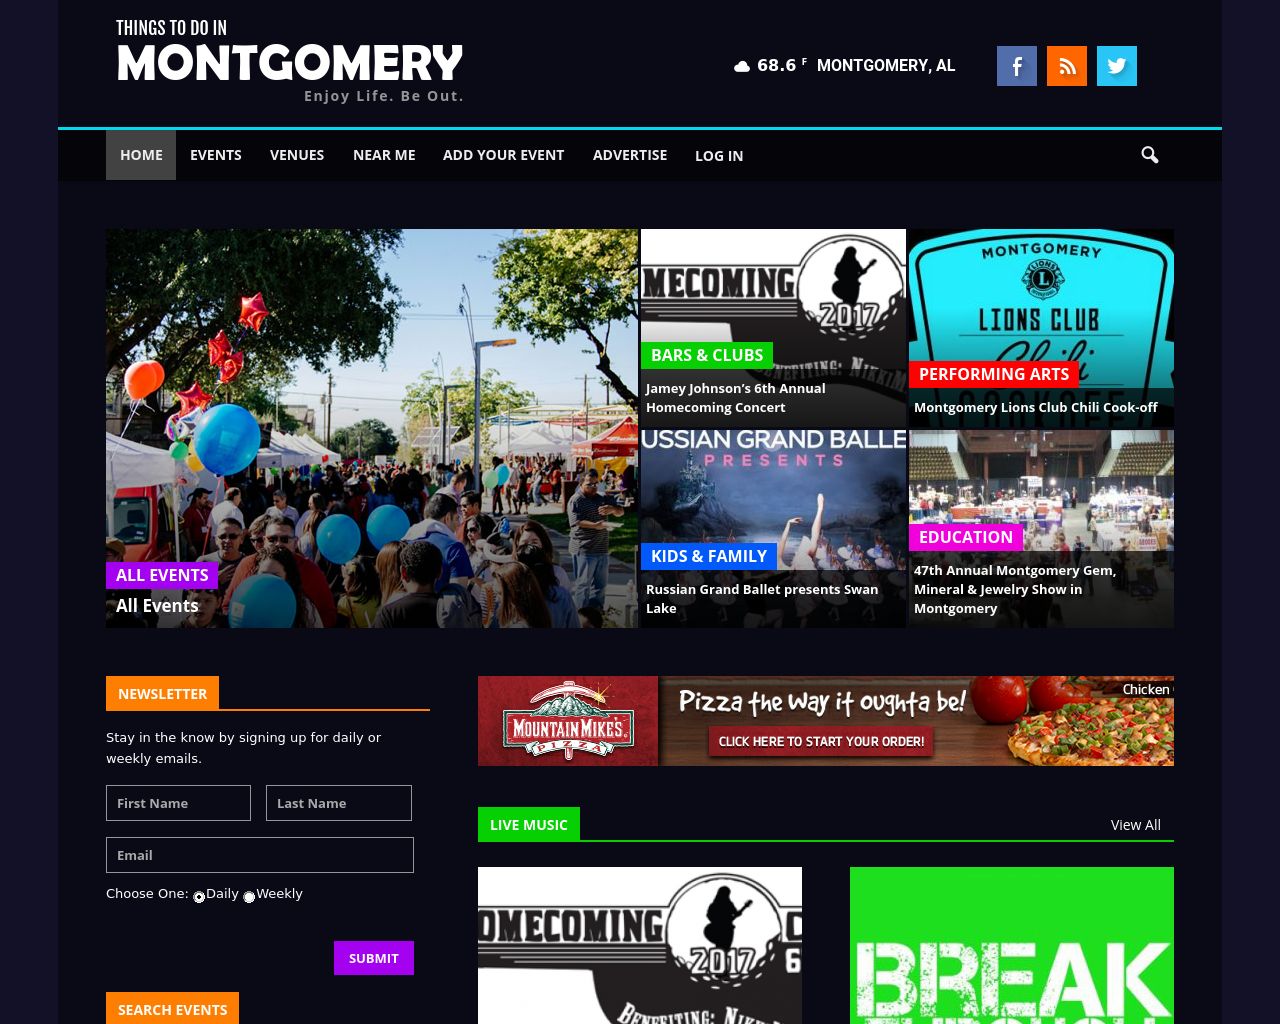 Things-To-Do-MONGOMERY,-AL-Advertising-Reviews-Pricing